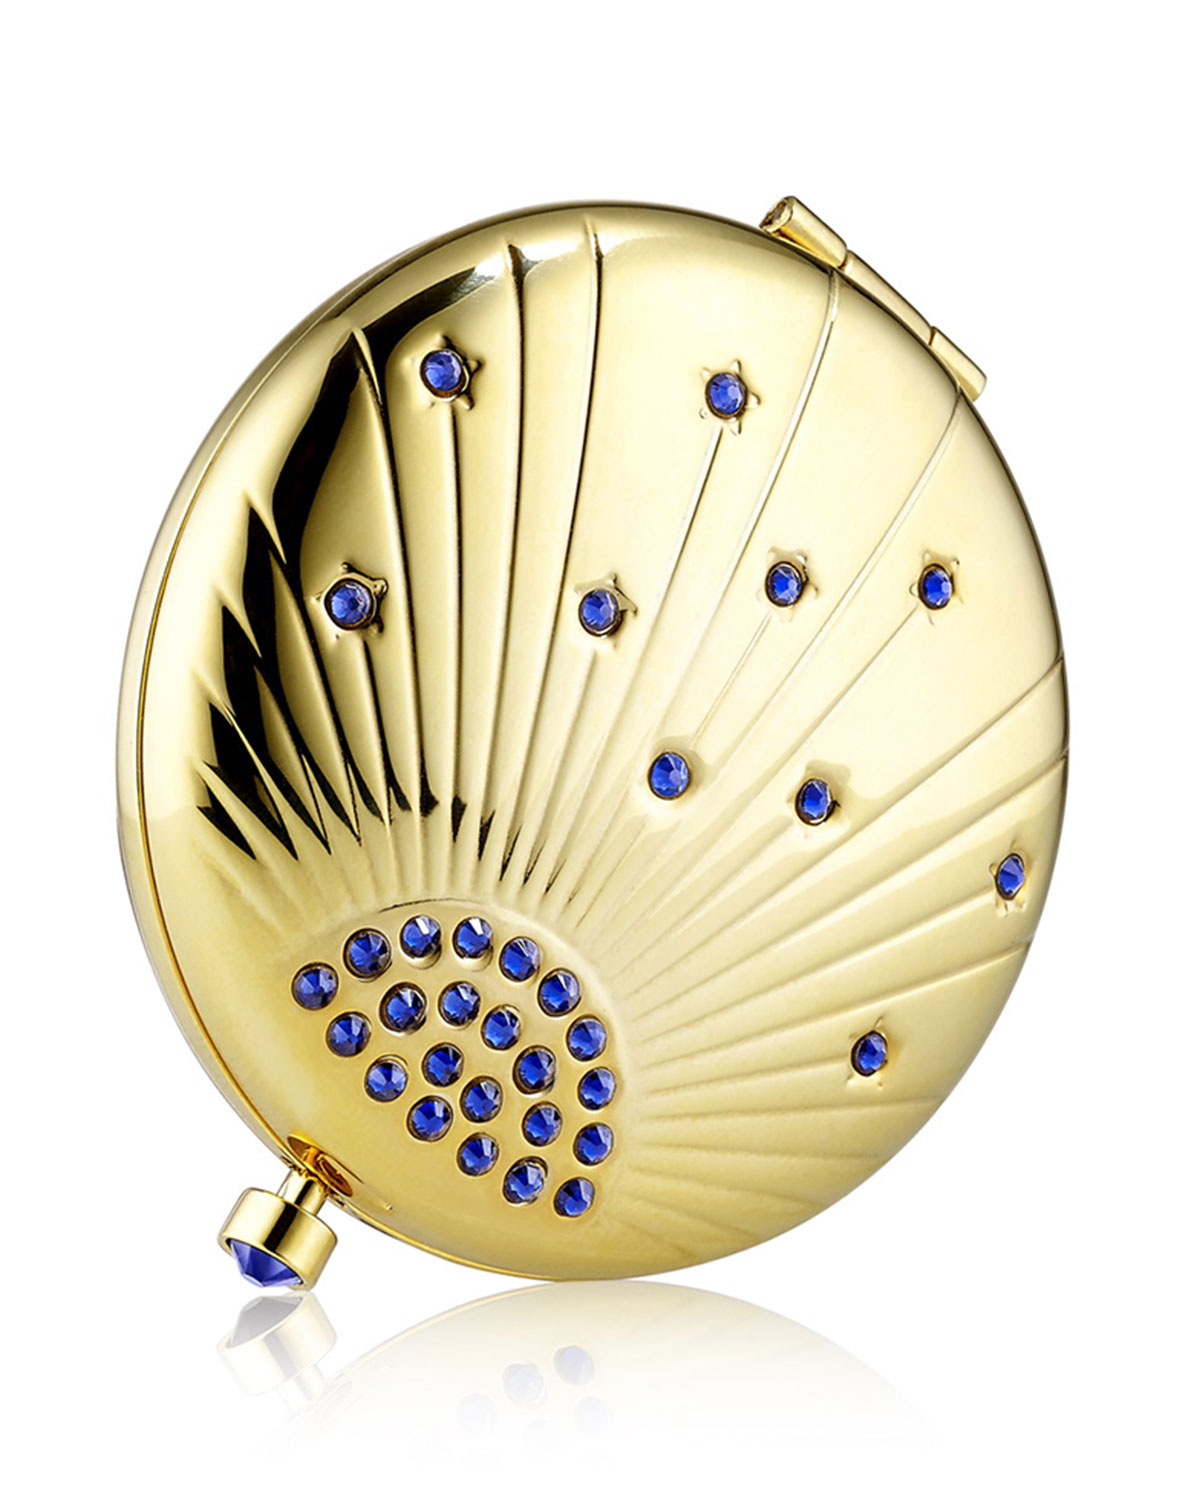 Limited Edition Shooting Stars Powder Compact - Estee Lauder